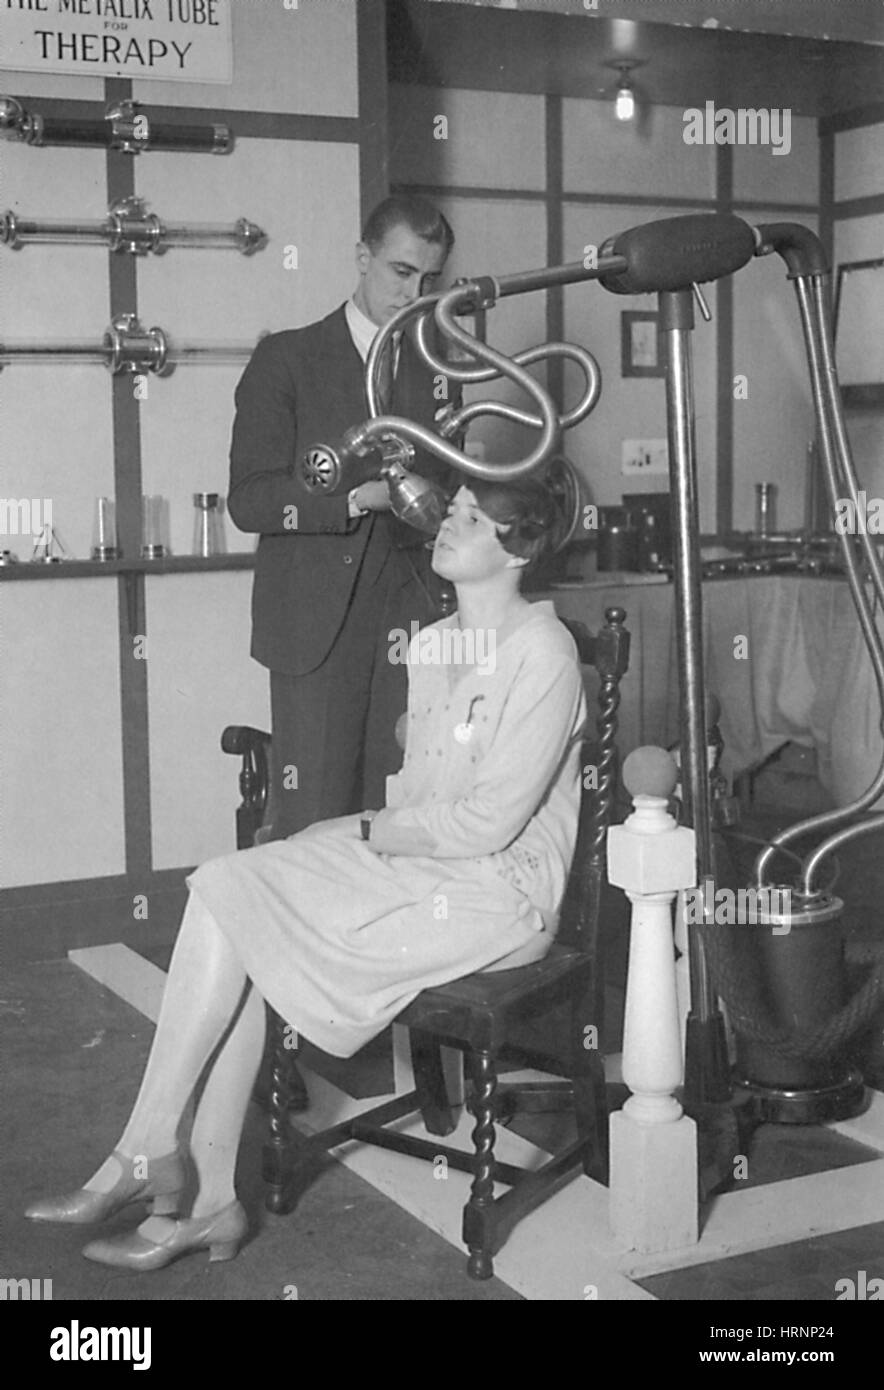 The Metalix Tube For Therapy, 1928 - Stock Image